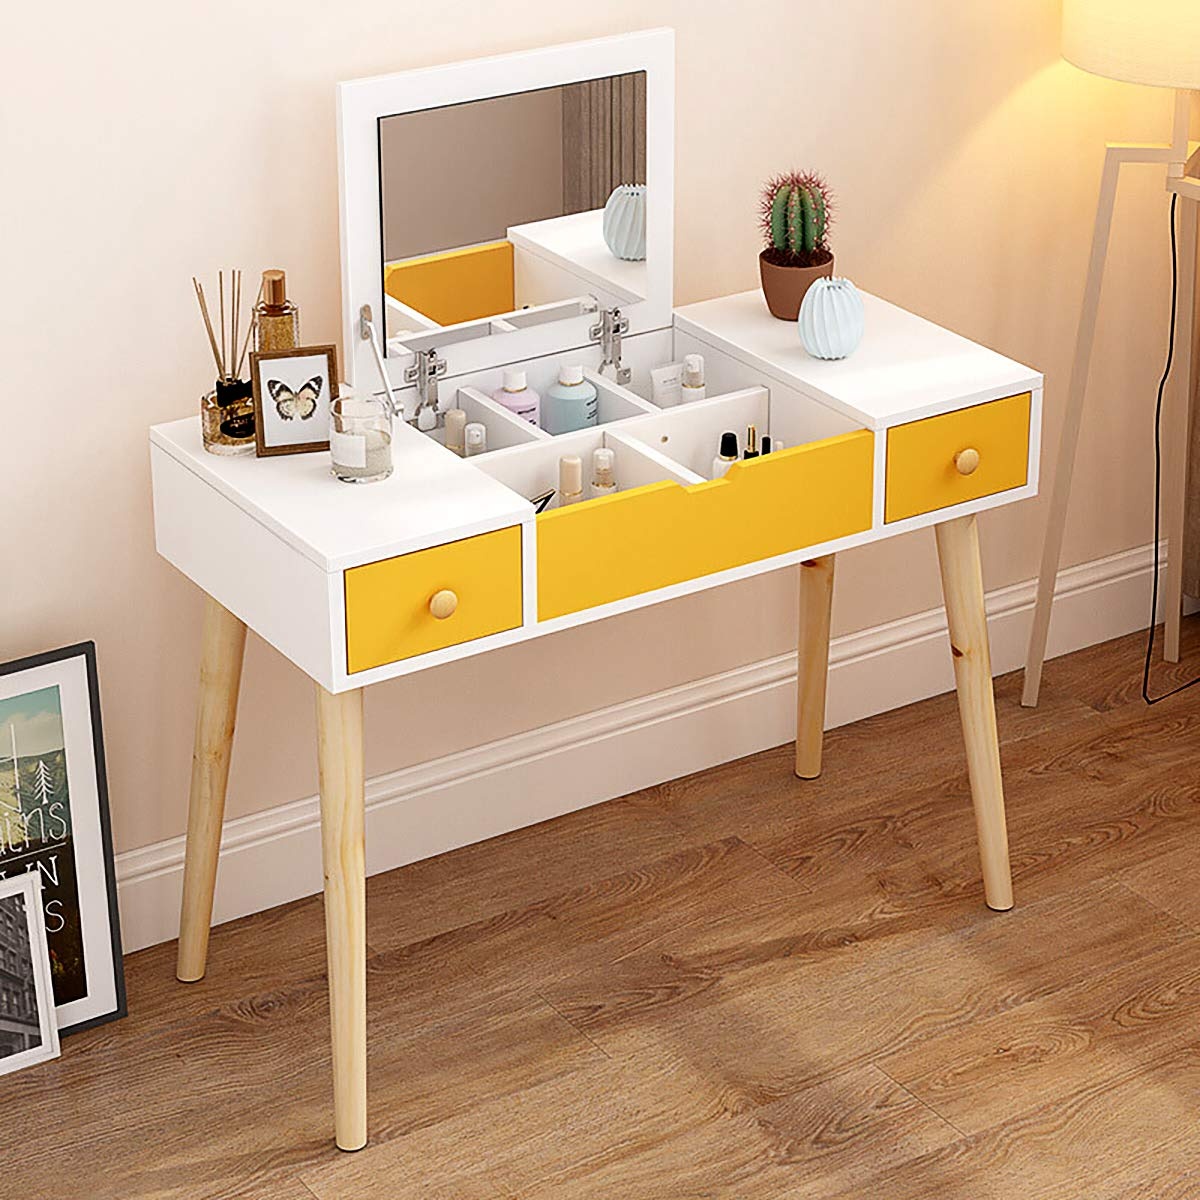 Dressing Table, Multifunctional Makeup Table Wood Vanity Set with Flip Top Mirror Writing Desk with 2 Drawers 5 Removable Divider Easy Assembly by Suninhome